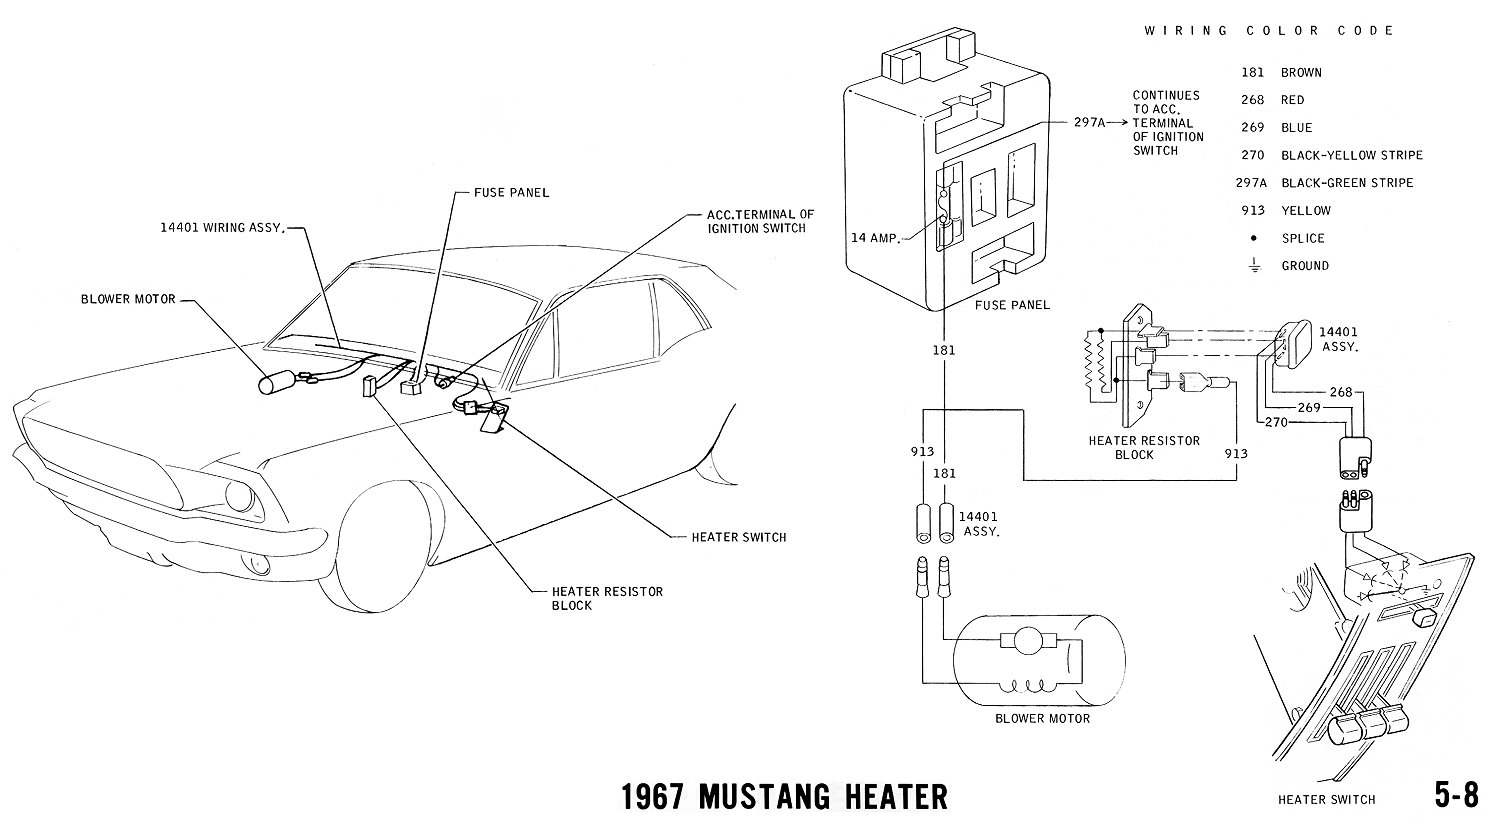 Windshield Wiper Wiring Diagram For 1966 Ford Mustang on 1962 cadillac vacuum diagram